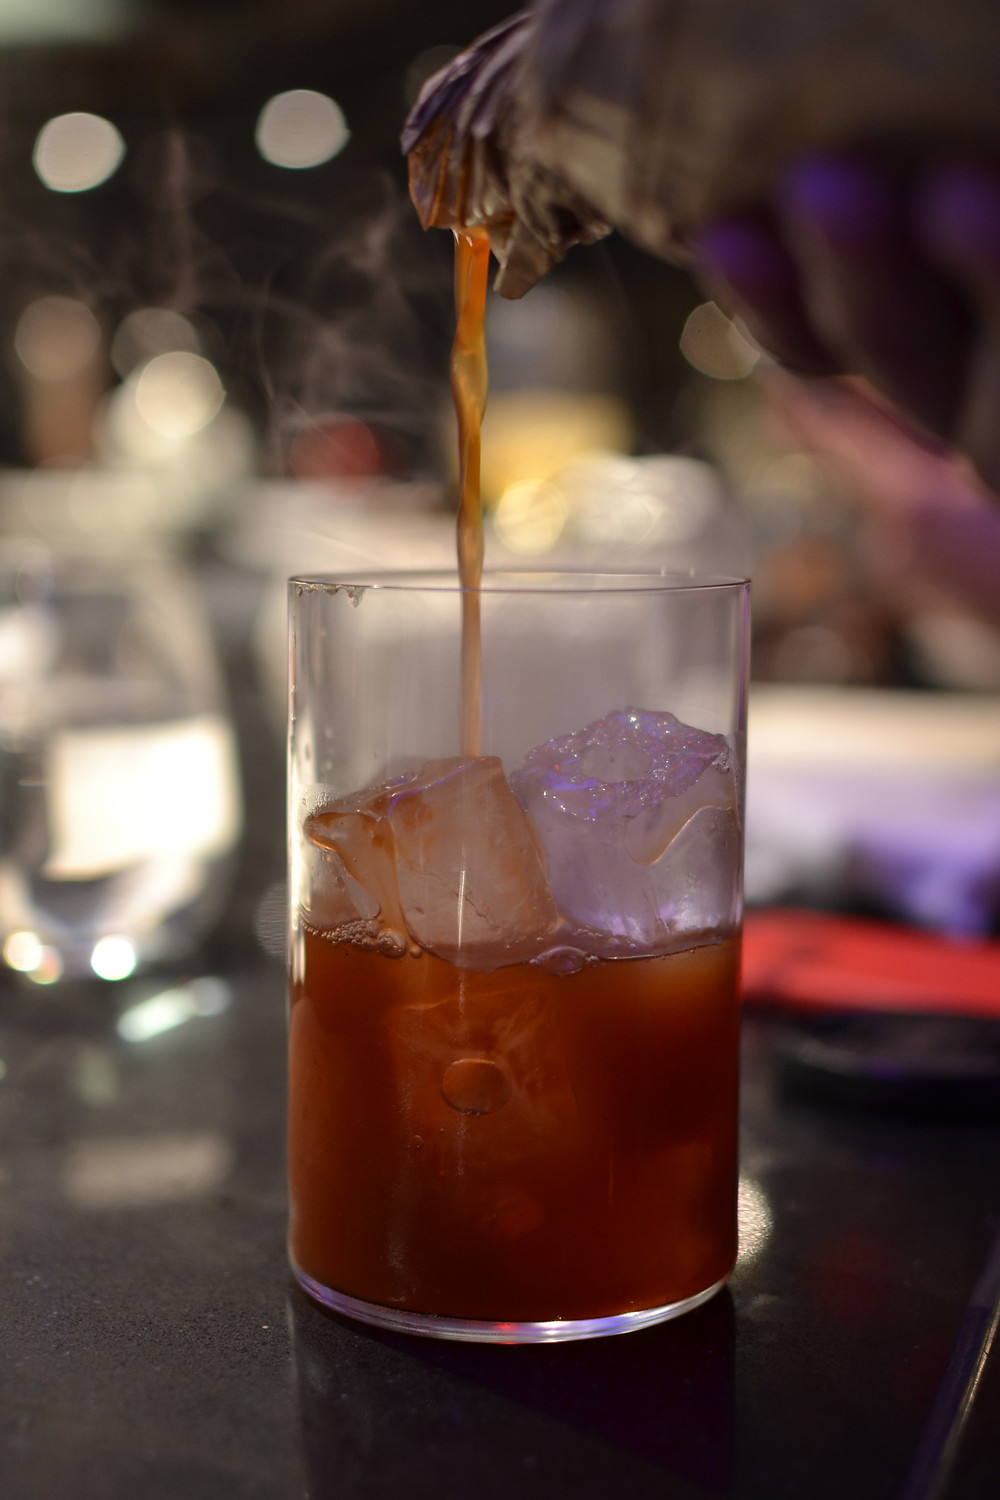 Rum and coke, without any actual coke!